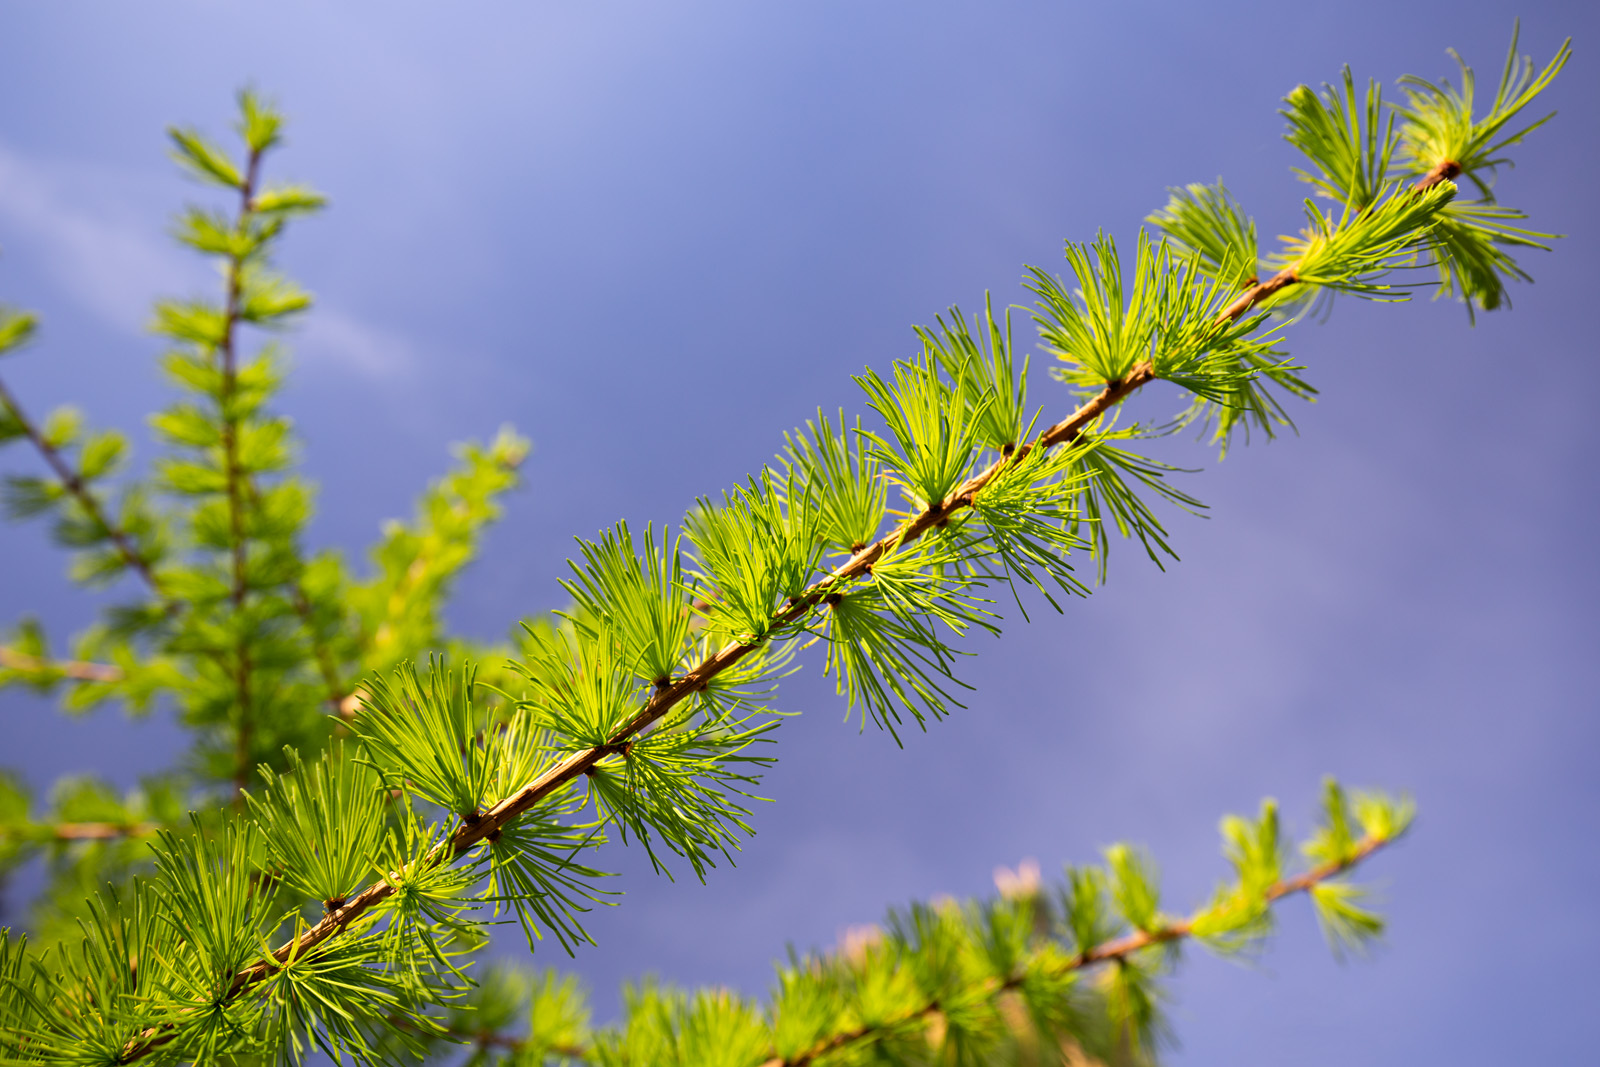 Newly-emerged needles of <i>Larix laricina</i>